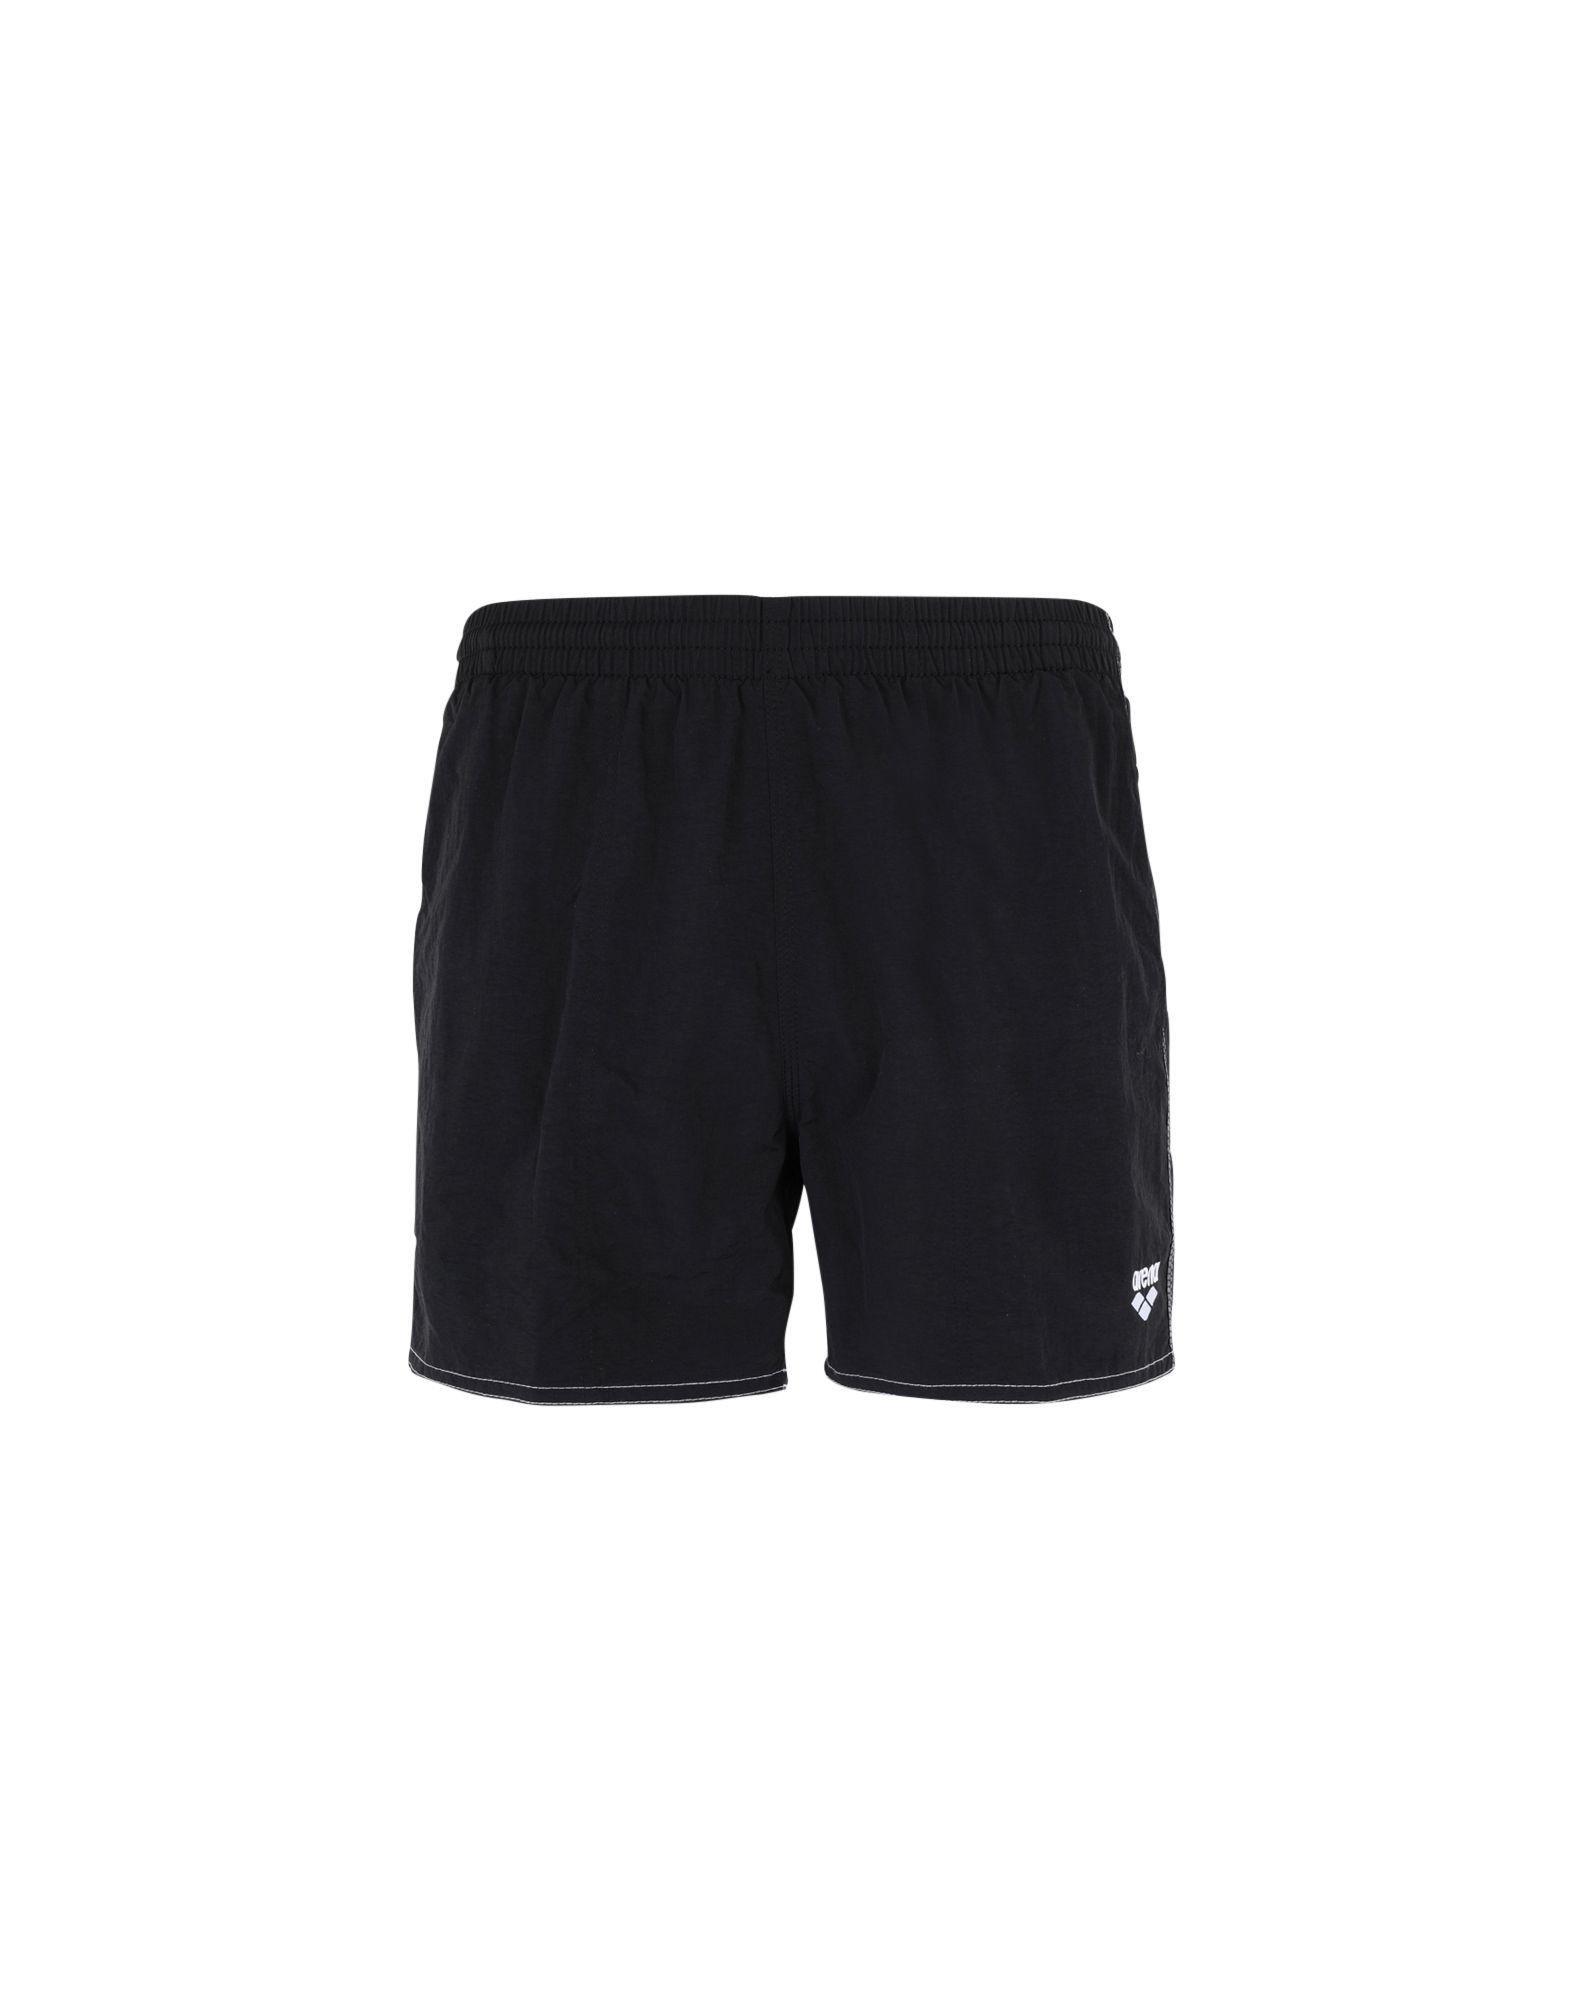 b02616c03691c Lyst - Arena Swimming Trunks in Black for Men